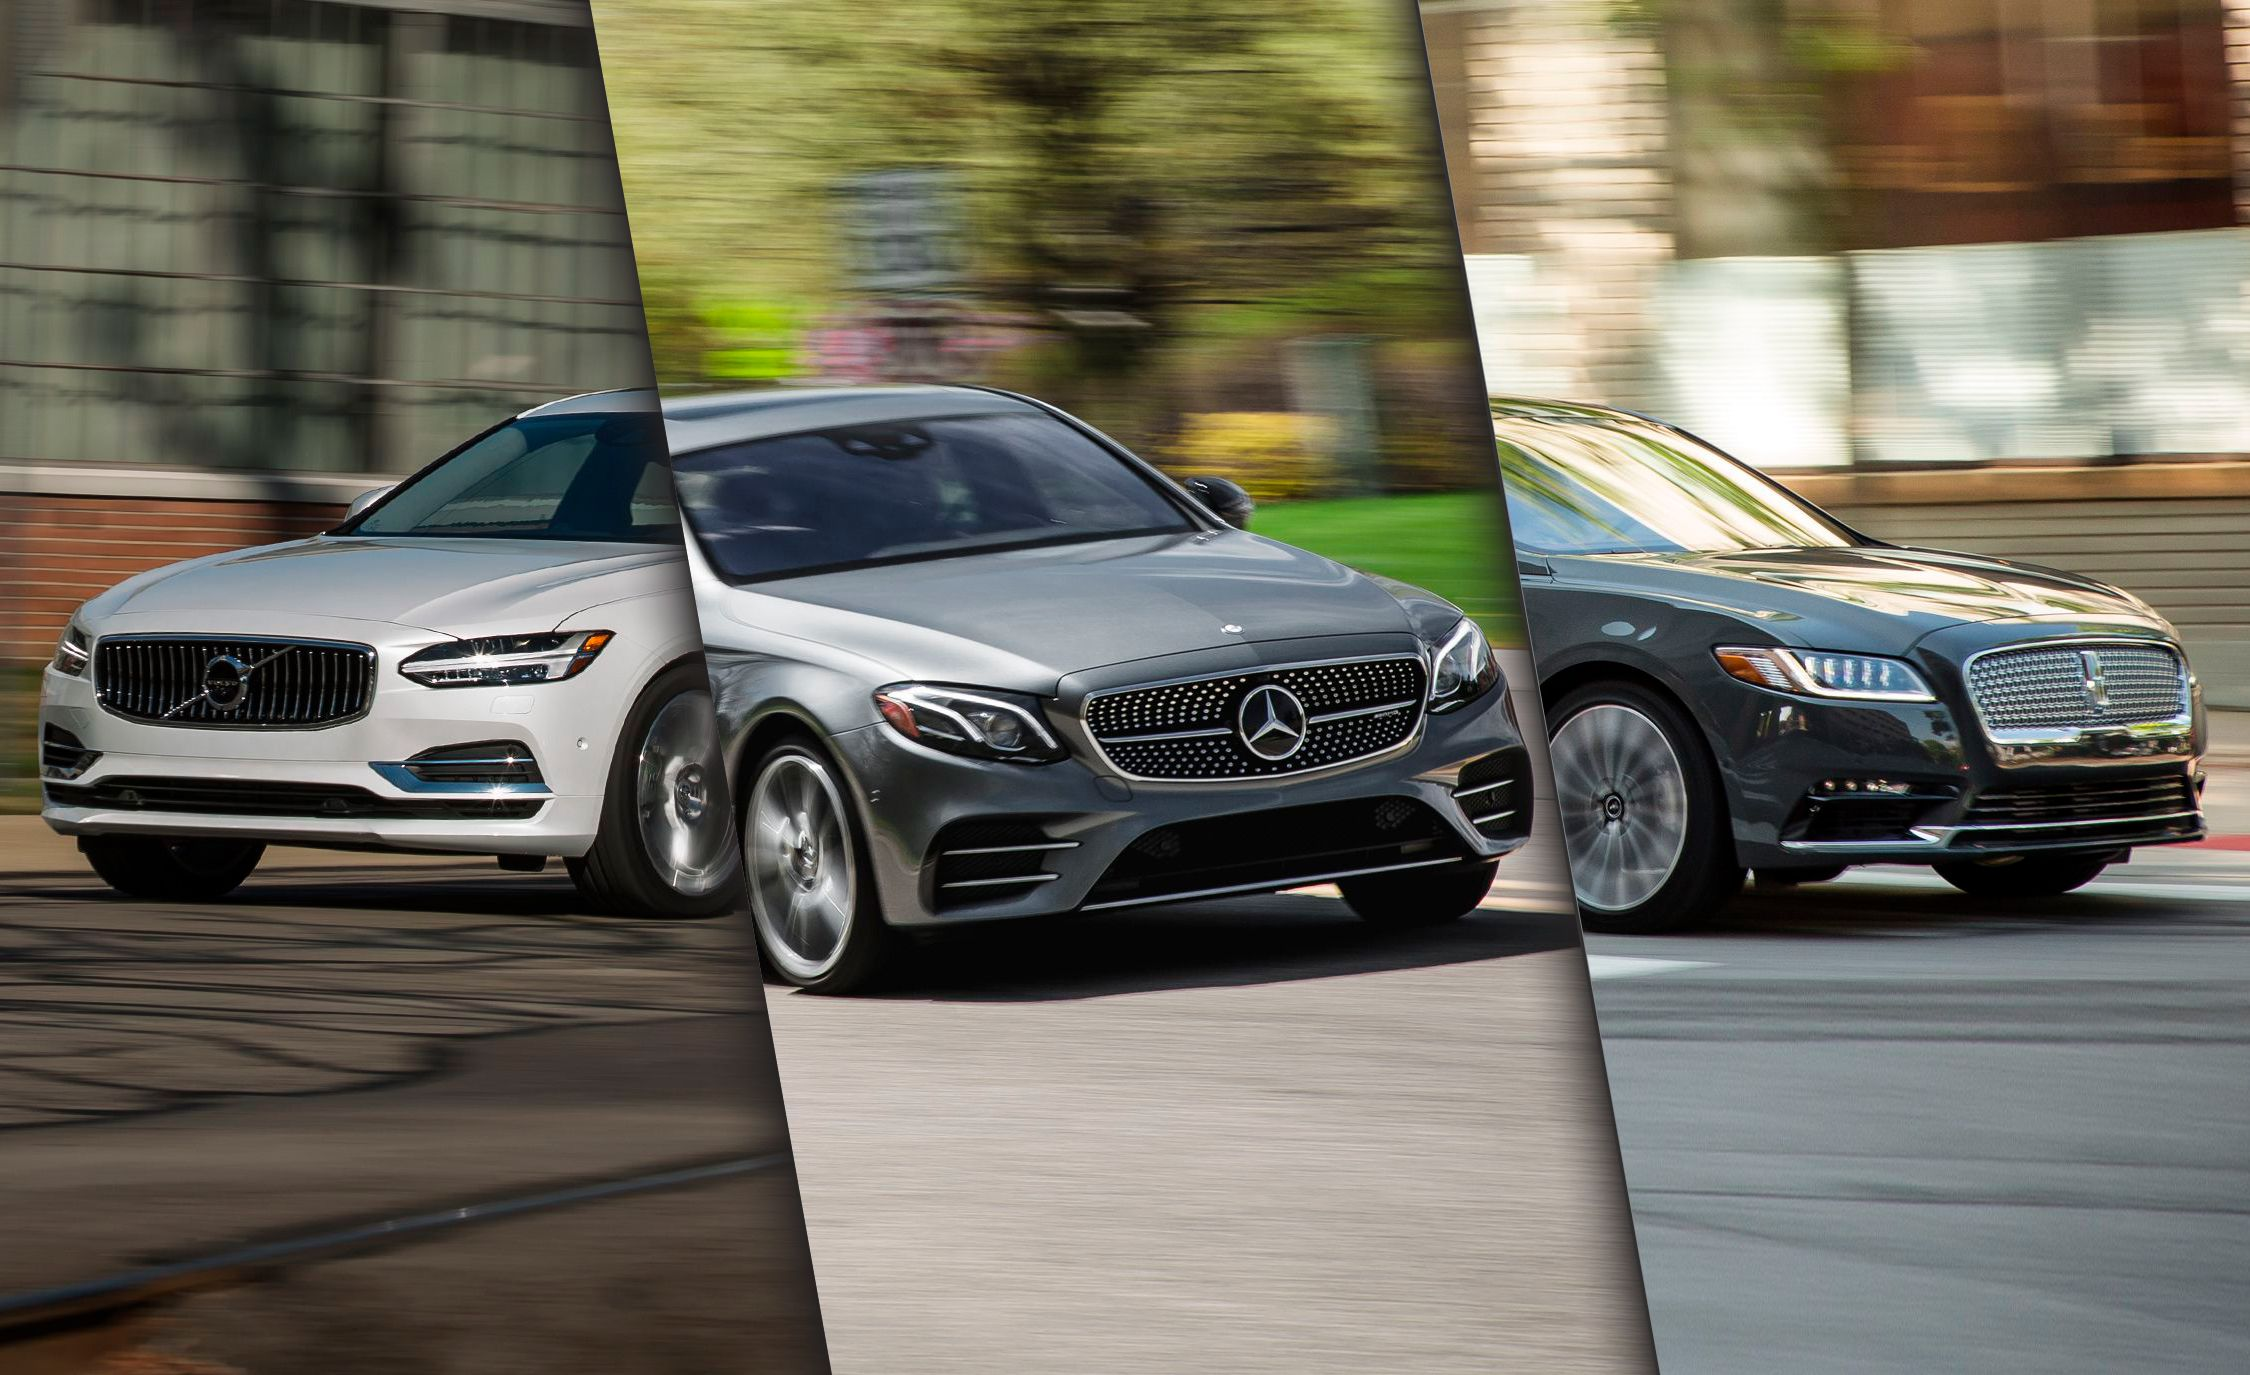 Every Mid Size Luxury Car Ranked From Worst To Best Feature And Driver